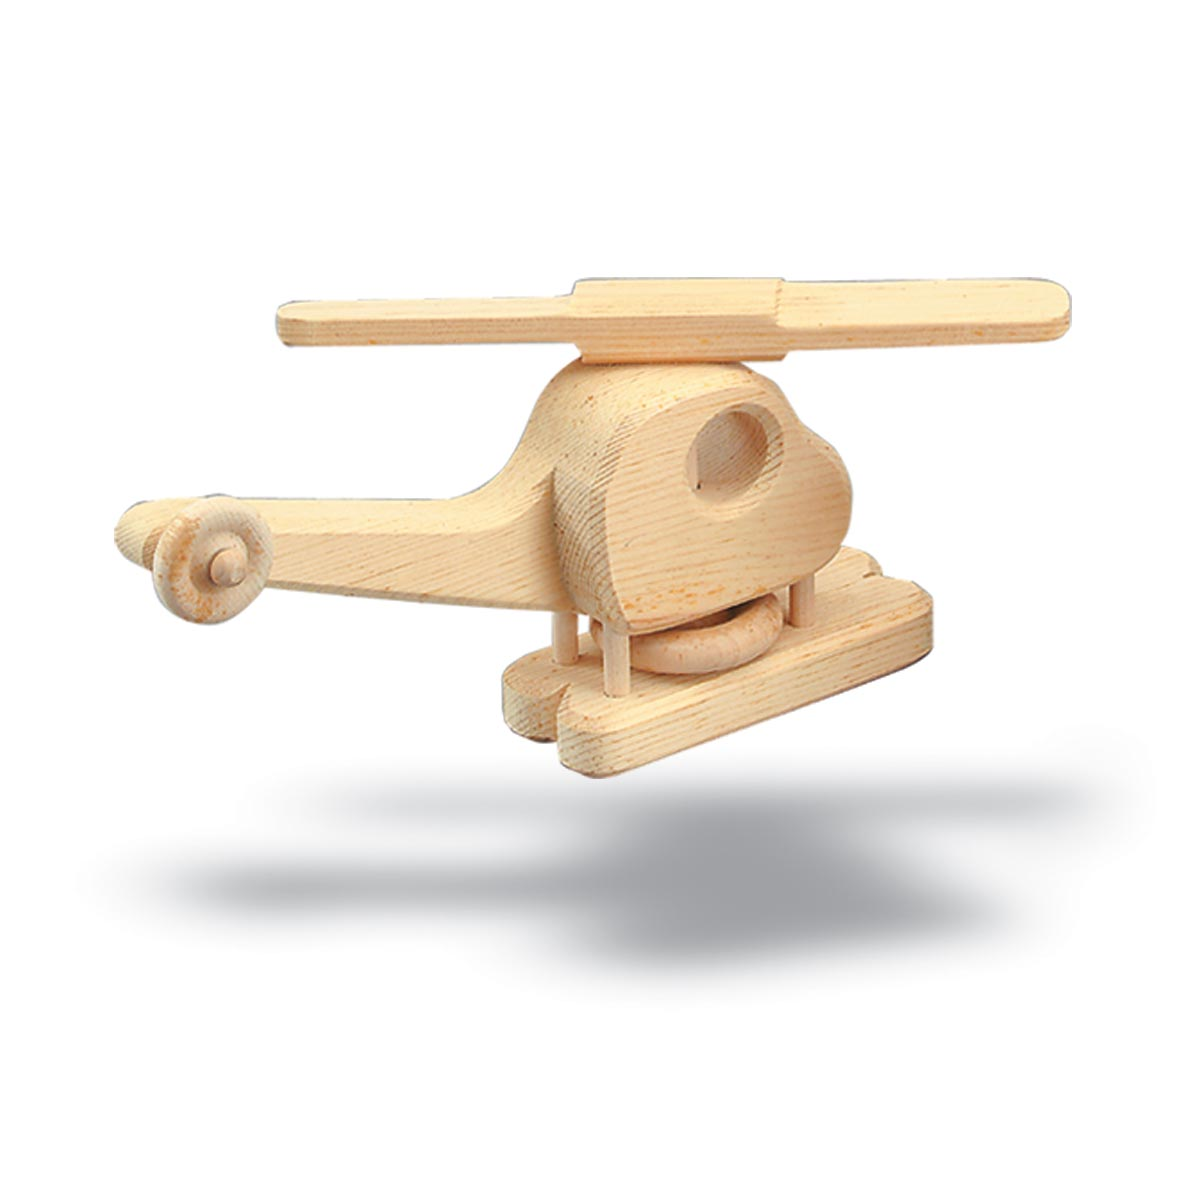 helicopter and bi-plane wooden model pattern